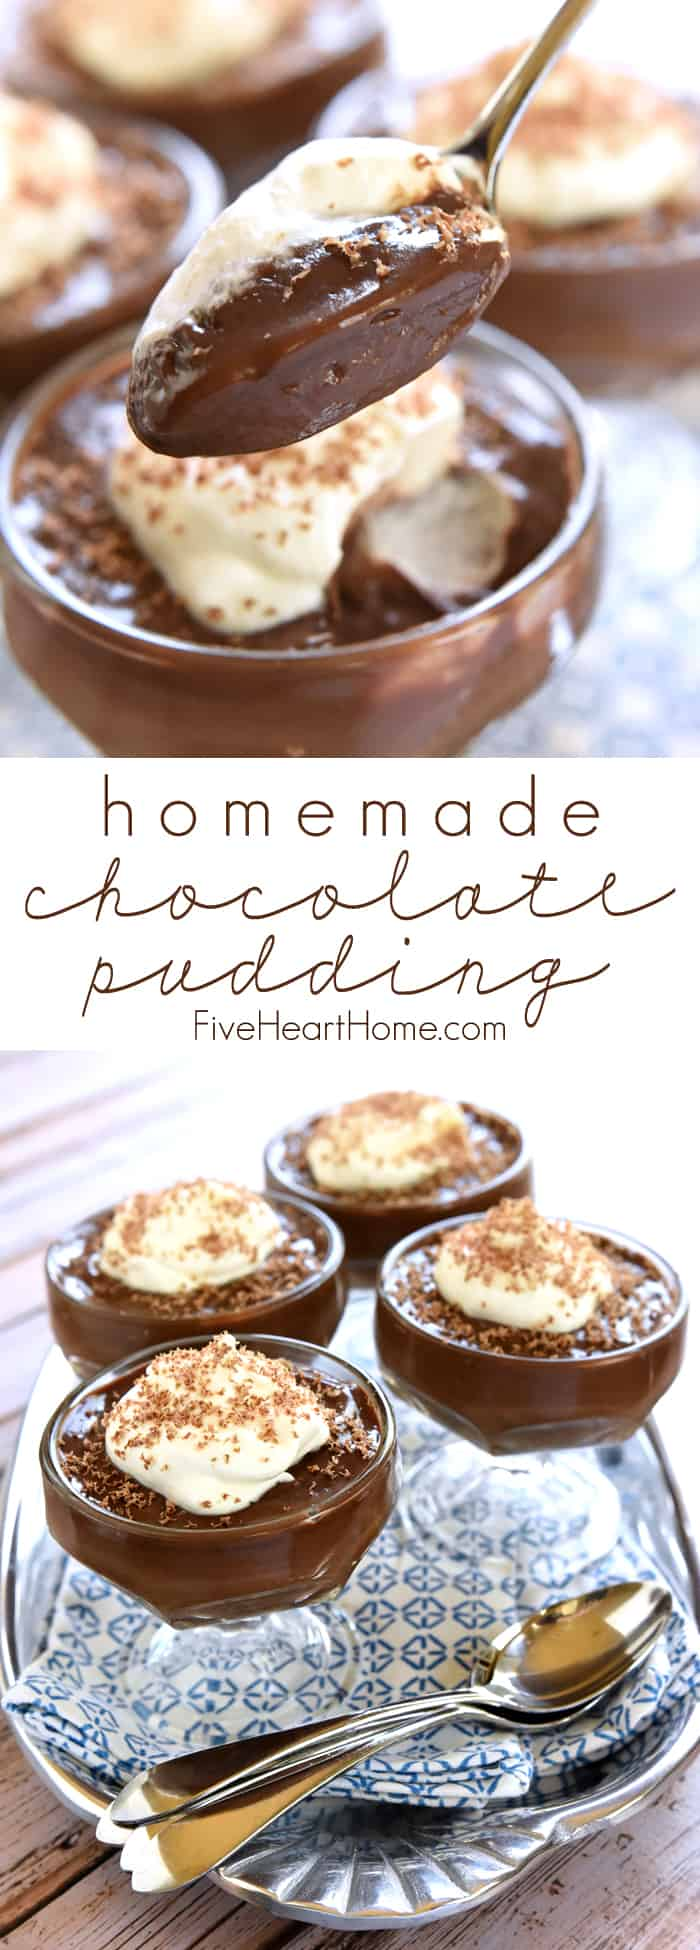 Homemade Chocolate Pudding Collage with Text Overlay